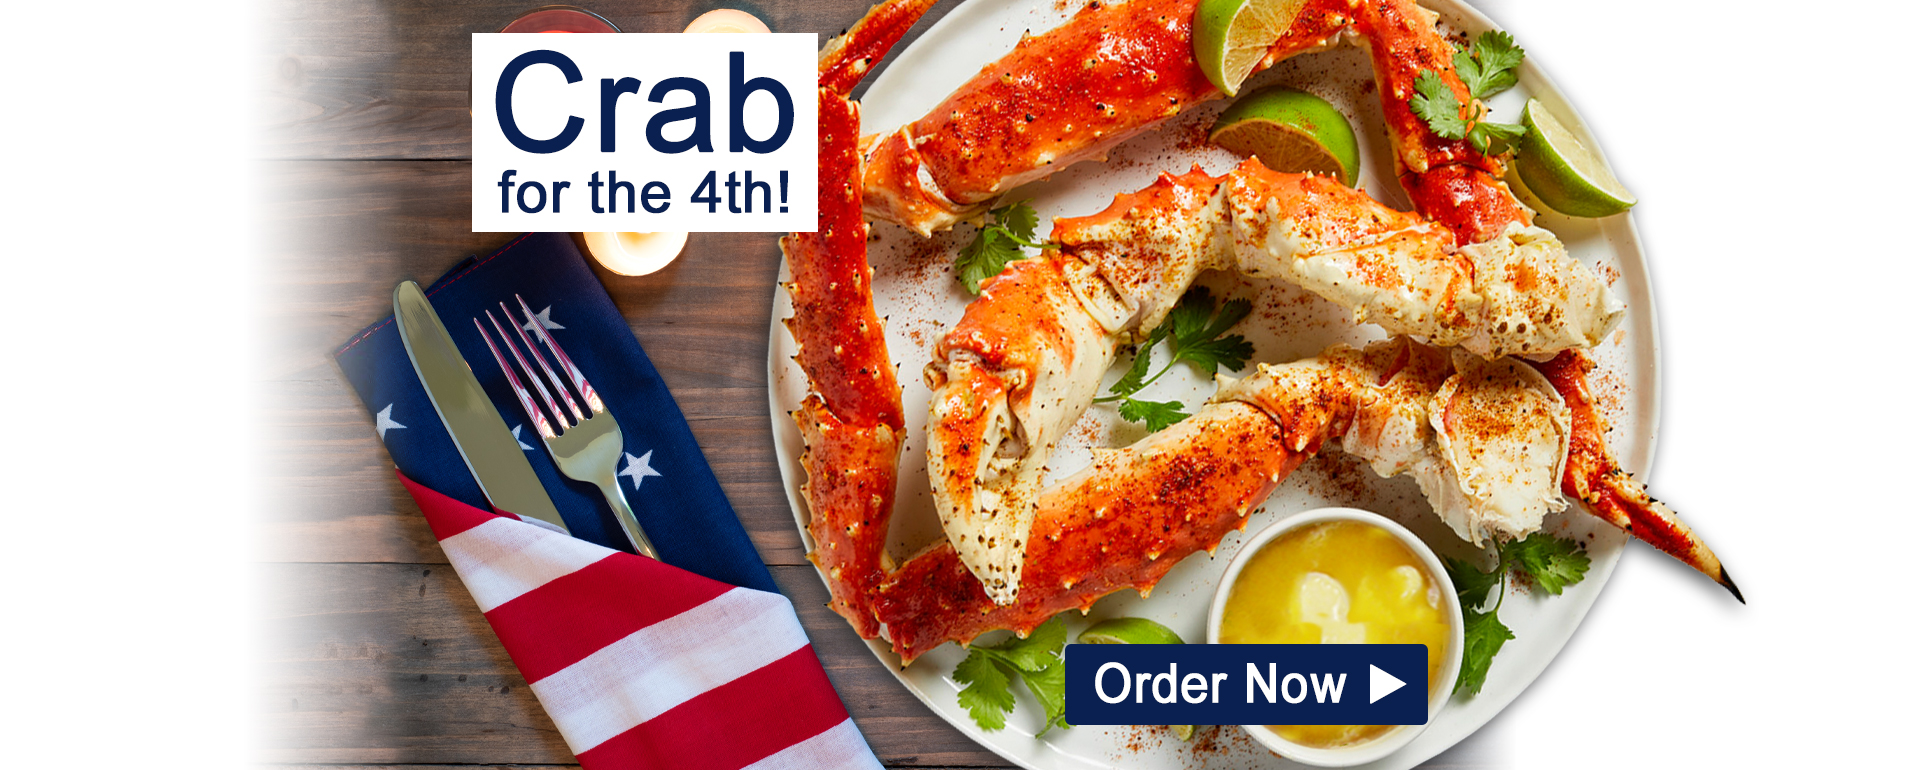 Giant King Crab for 4th of July!